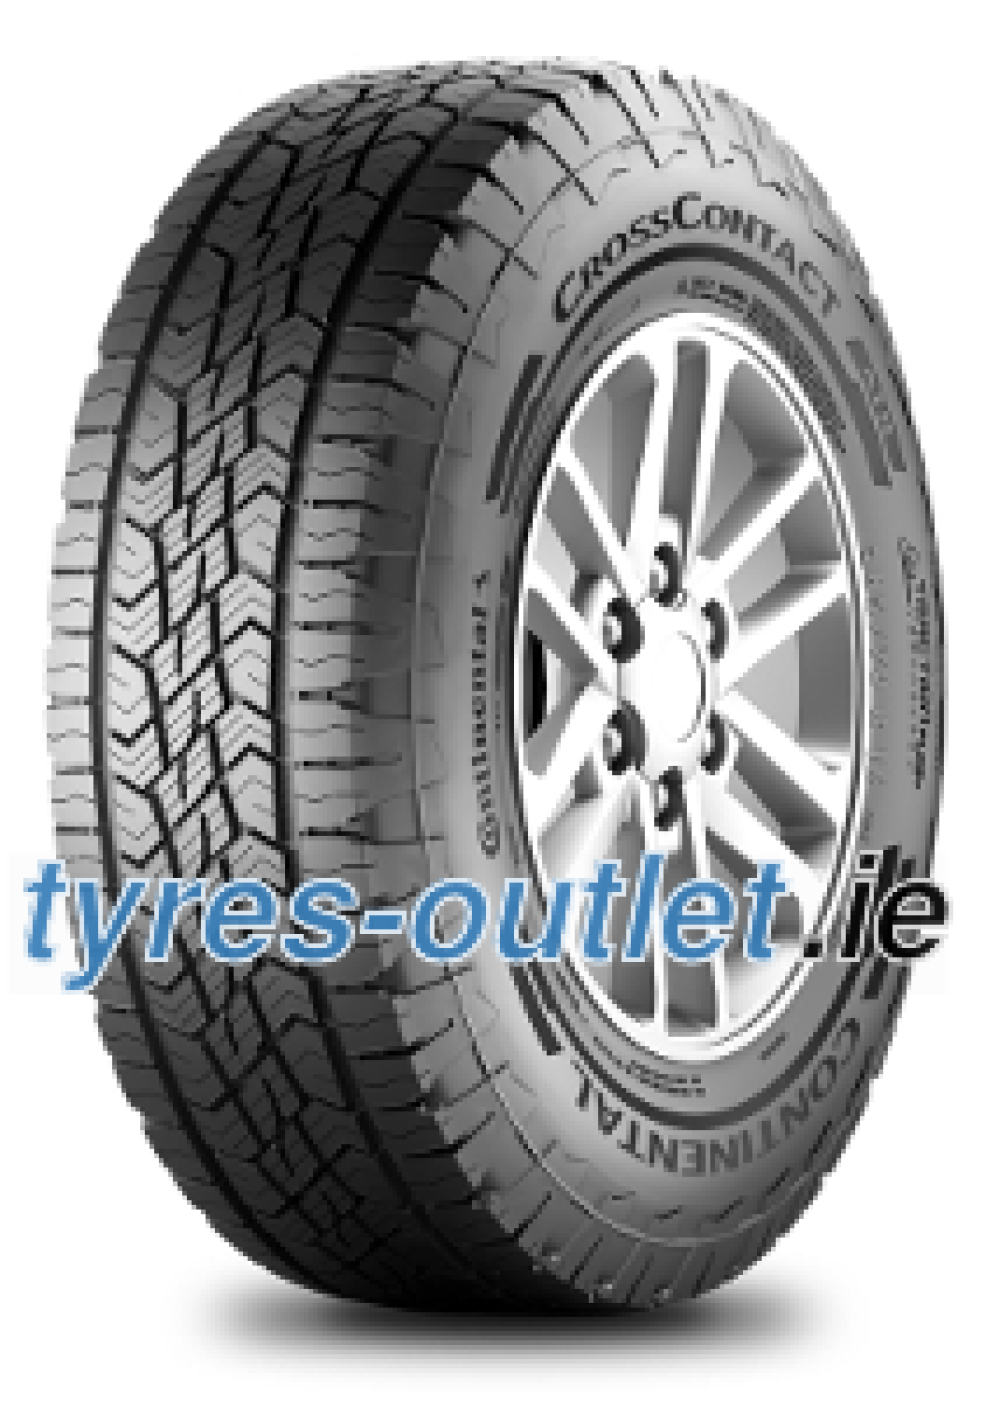 Continental CrossContact ATR ( 215/80 R15 102T with kerbing rib )